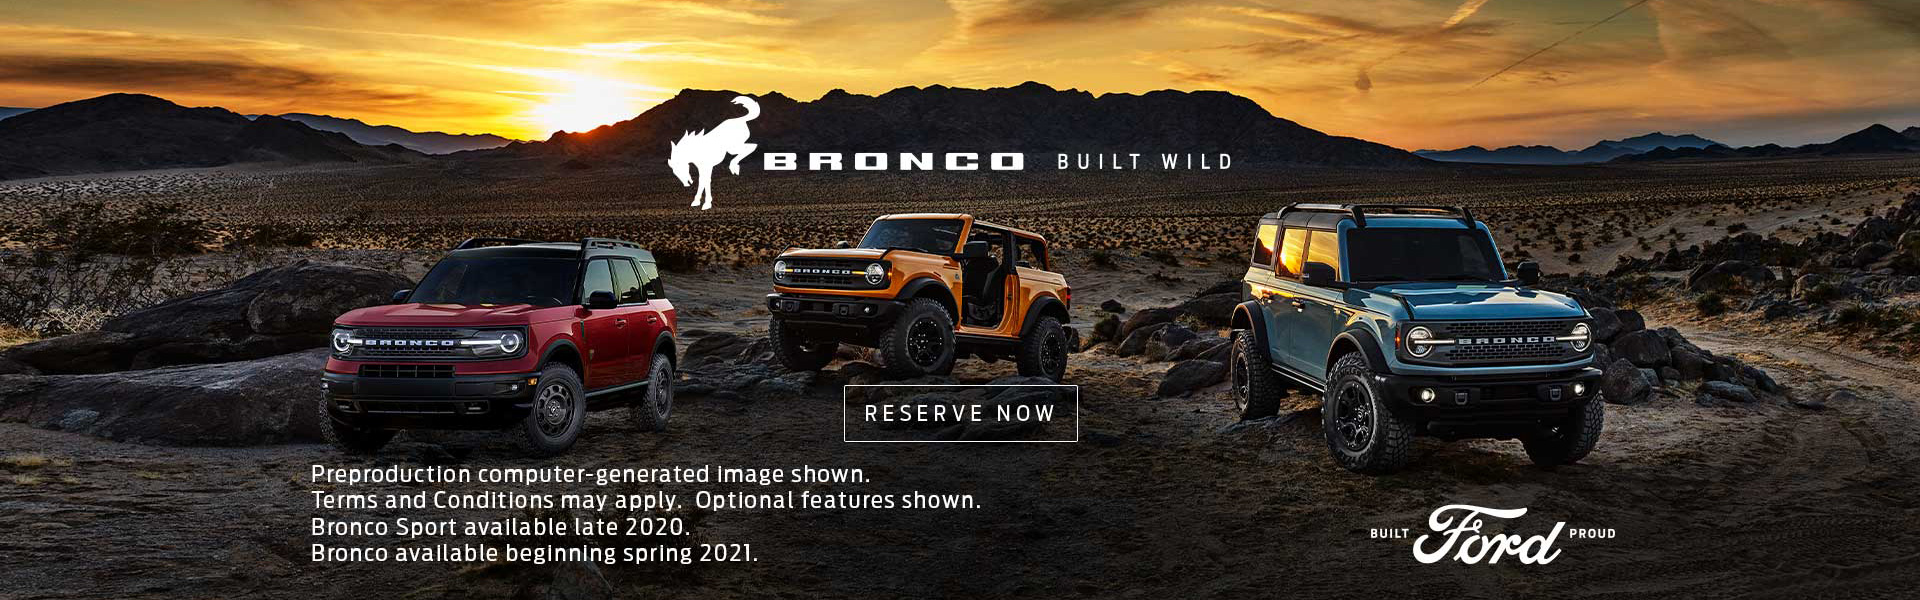 Broncoreveal Dealercon 1920x600